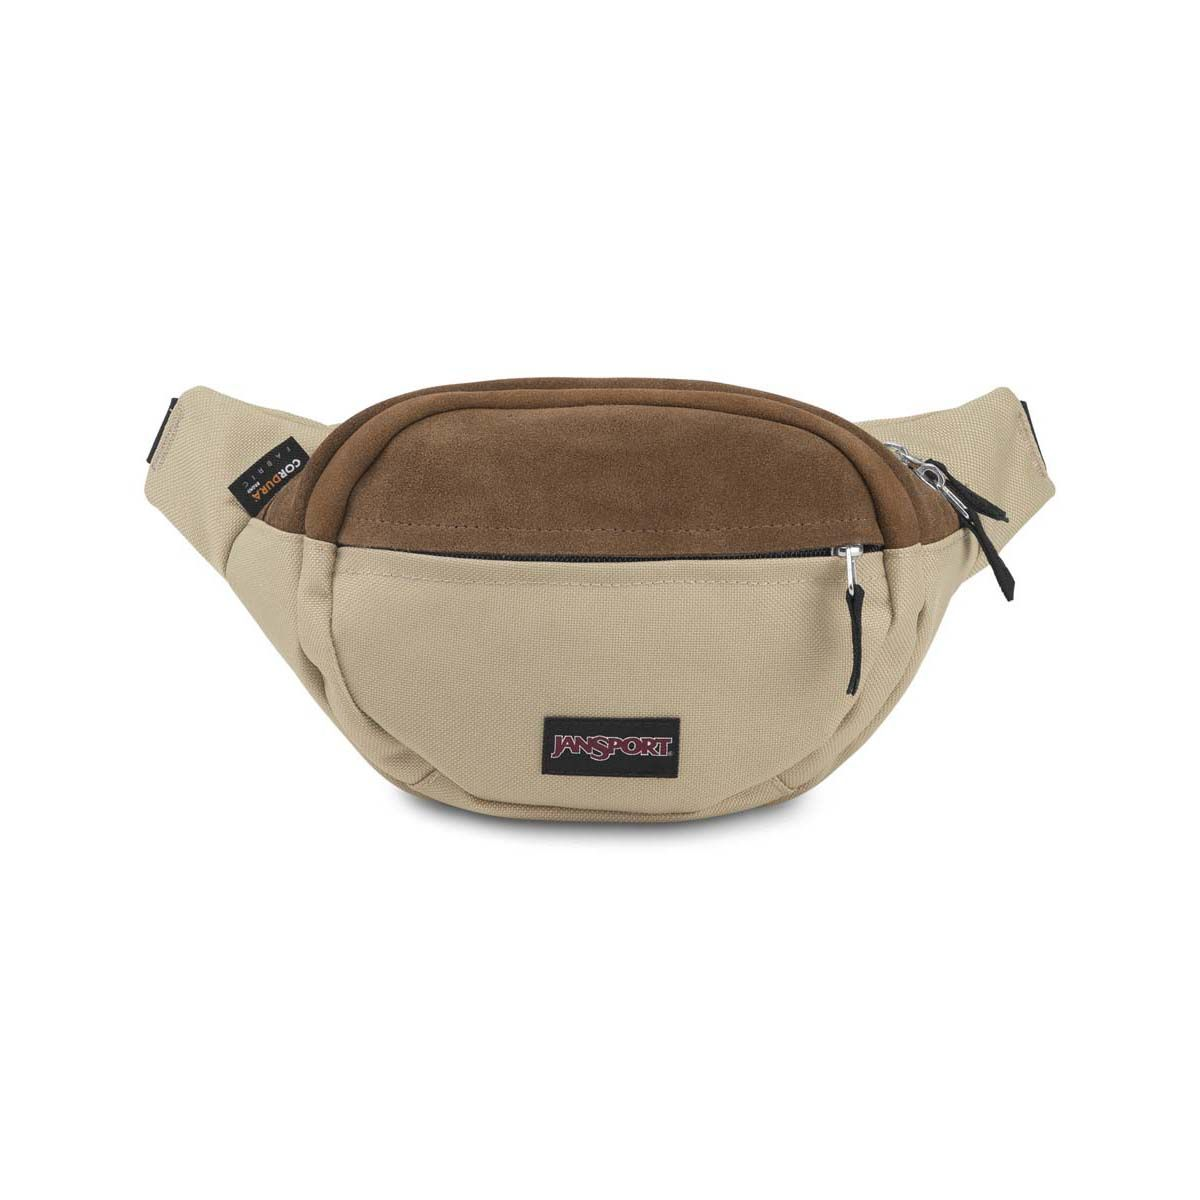 JanSport Fifth Ave Suede Fanny Pack in Oyster